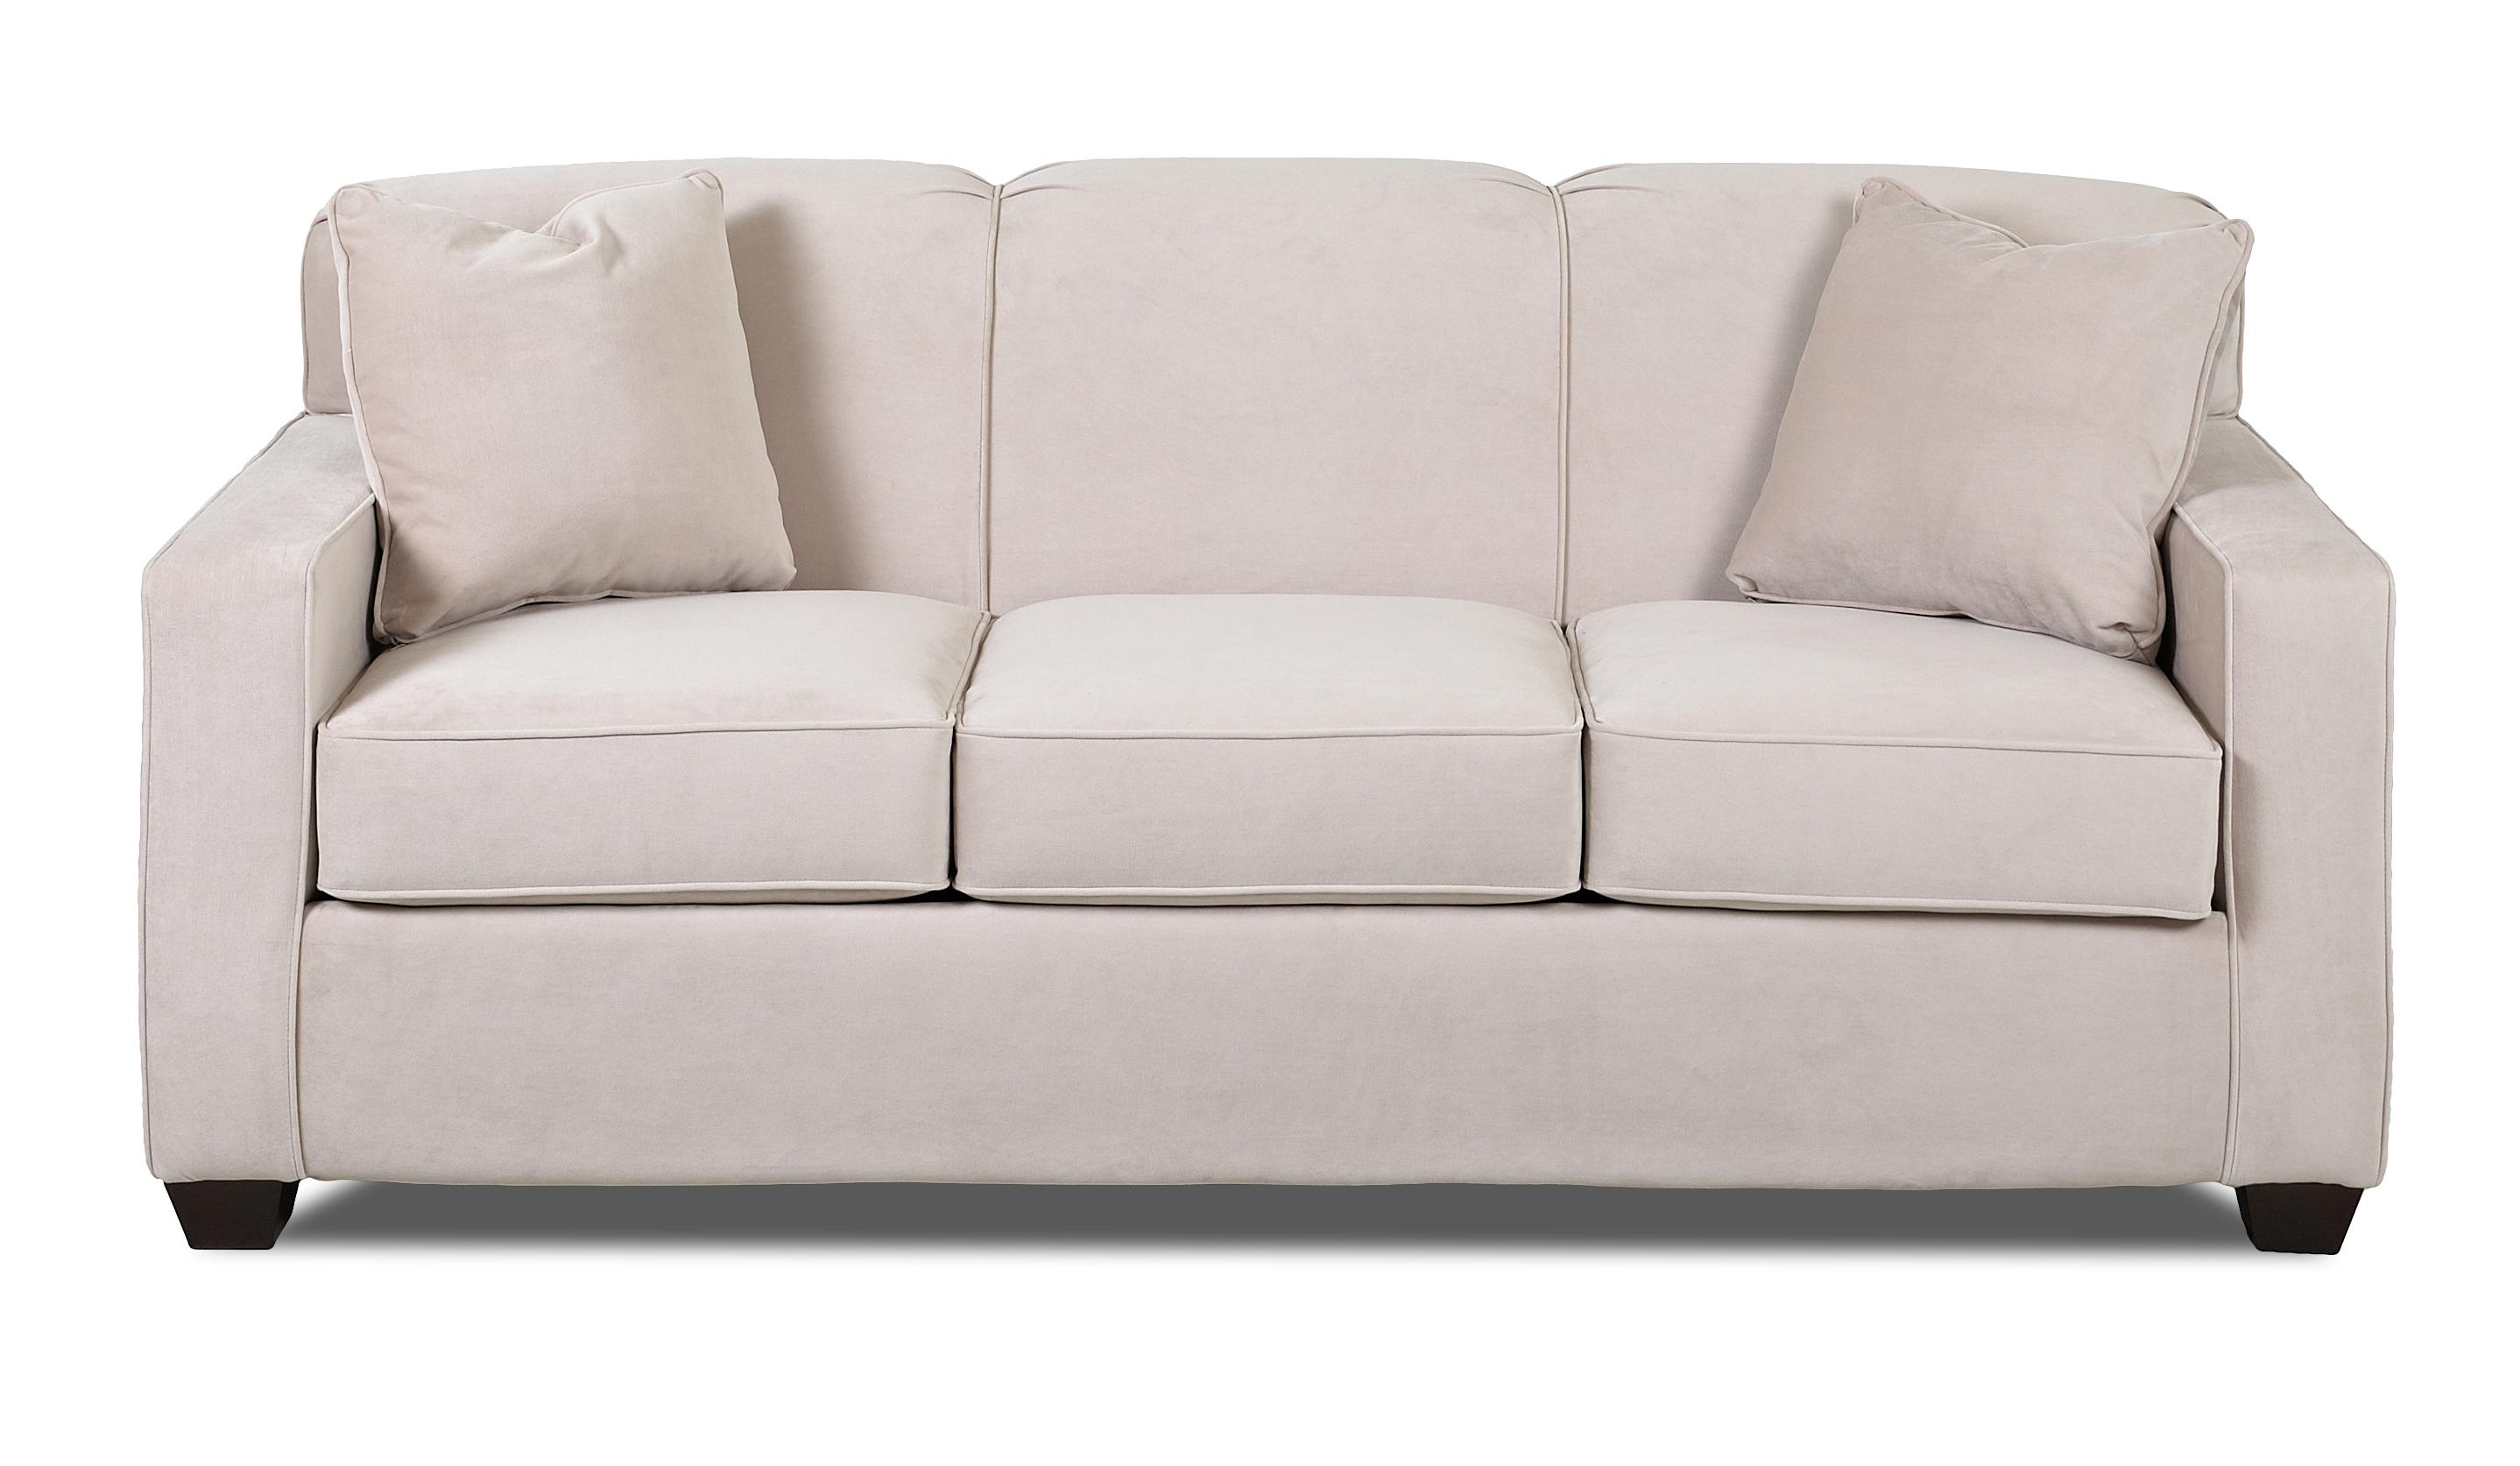 Loveseat Queen Sleeper Sofa